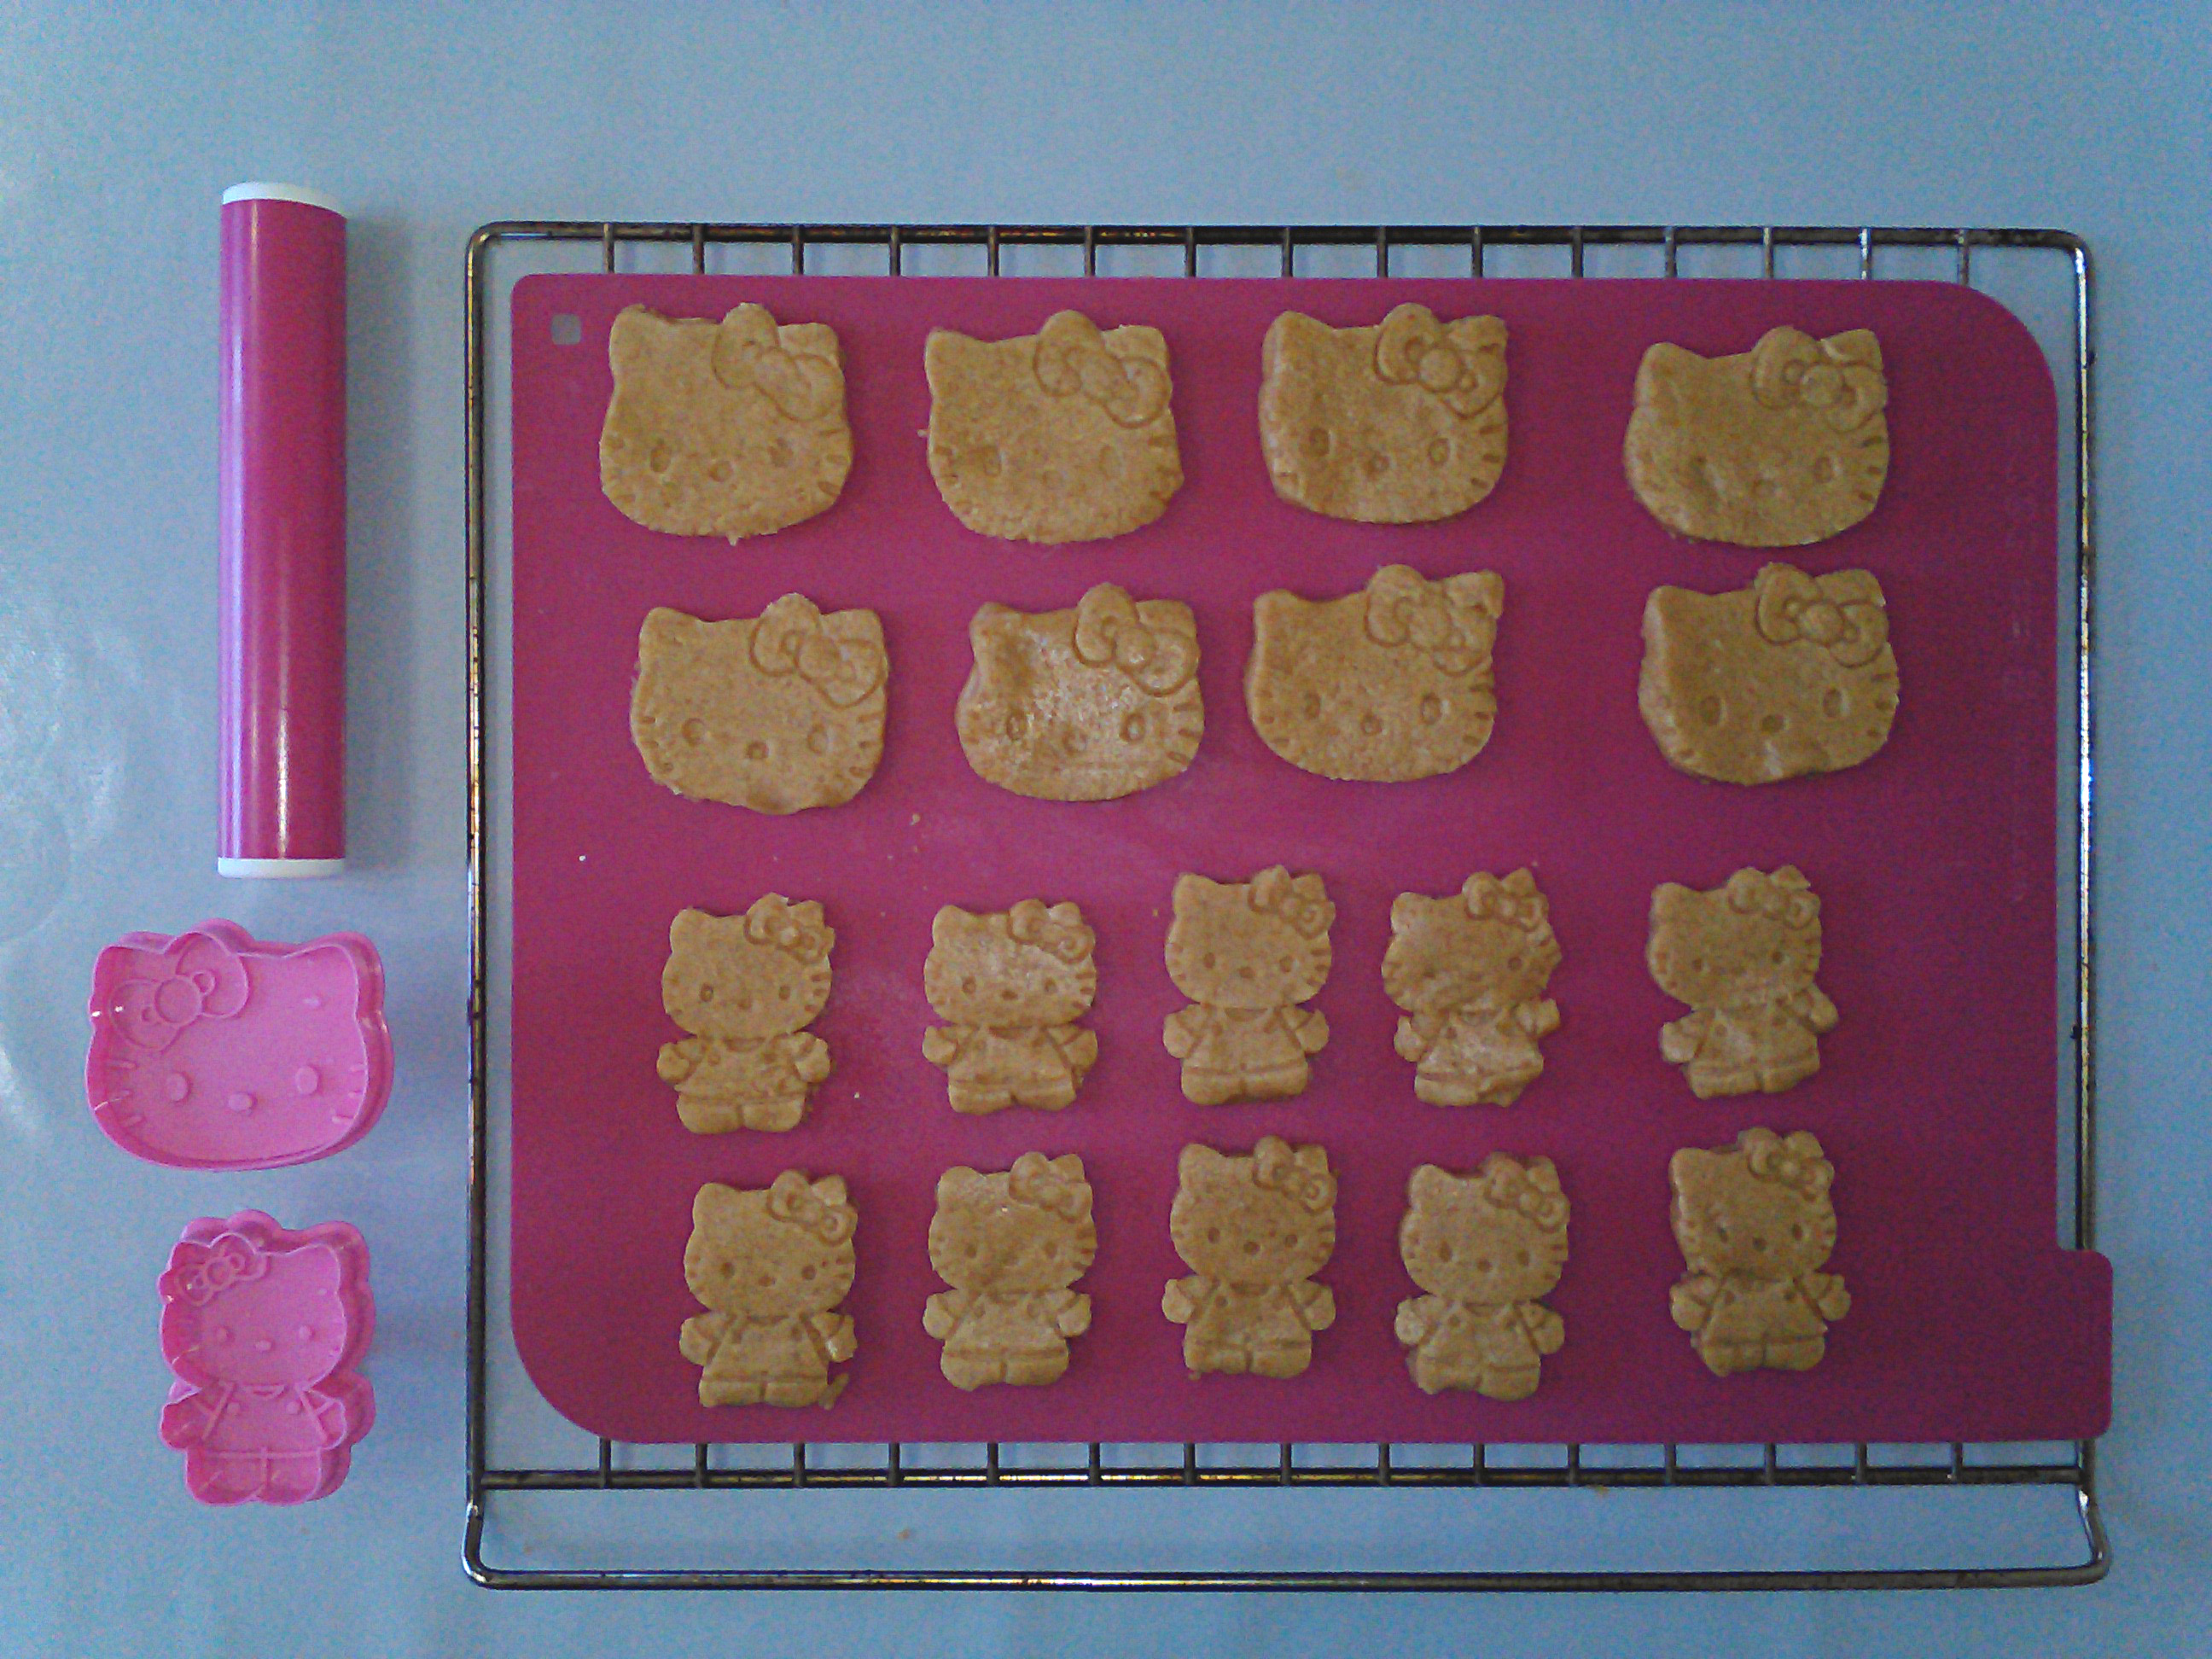 6_pate-biscuit-hello-kitty